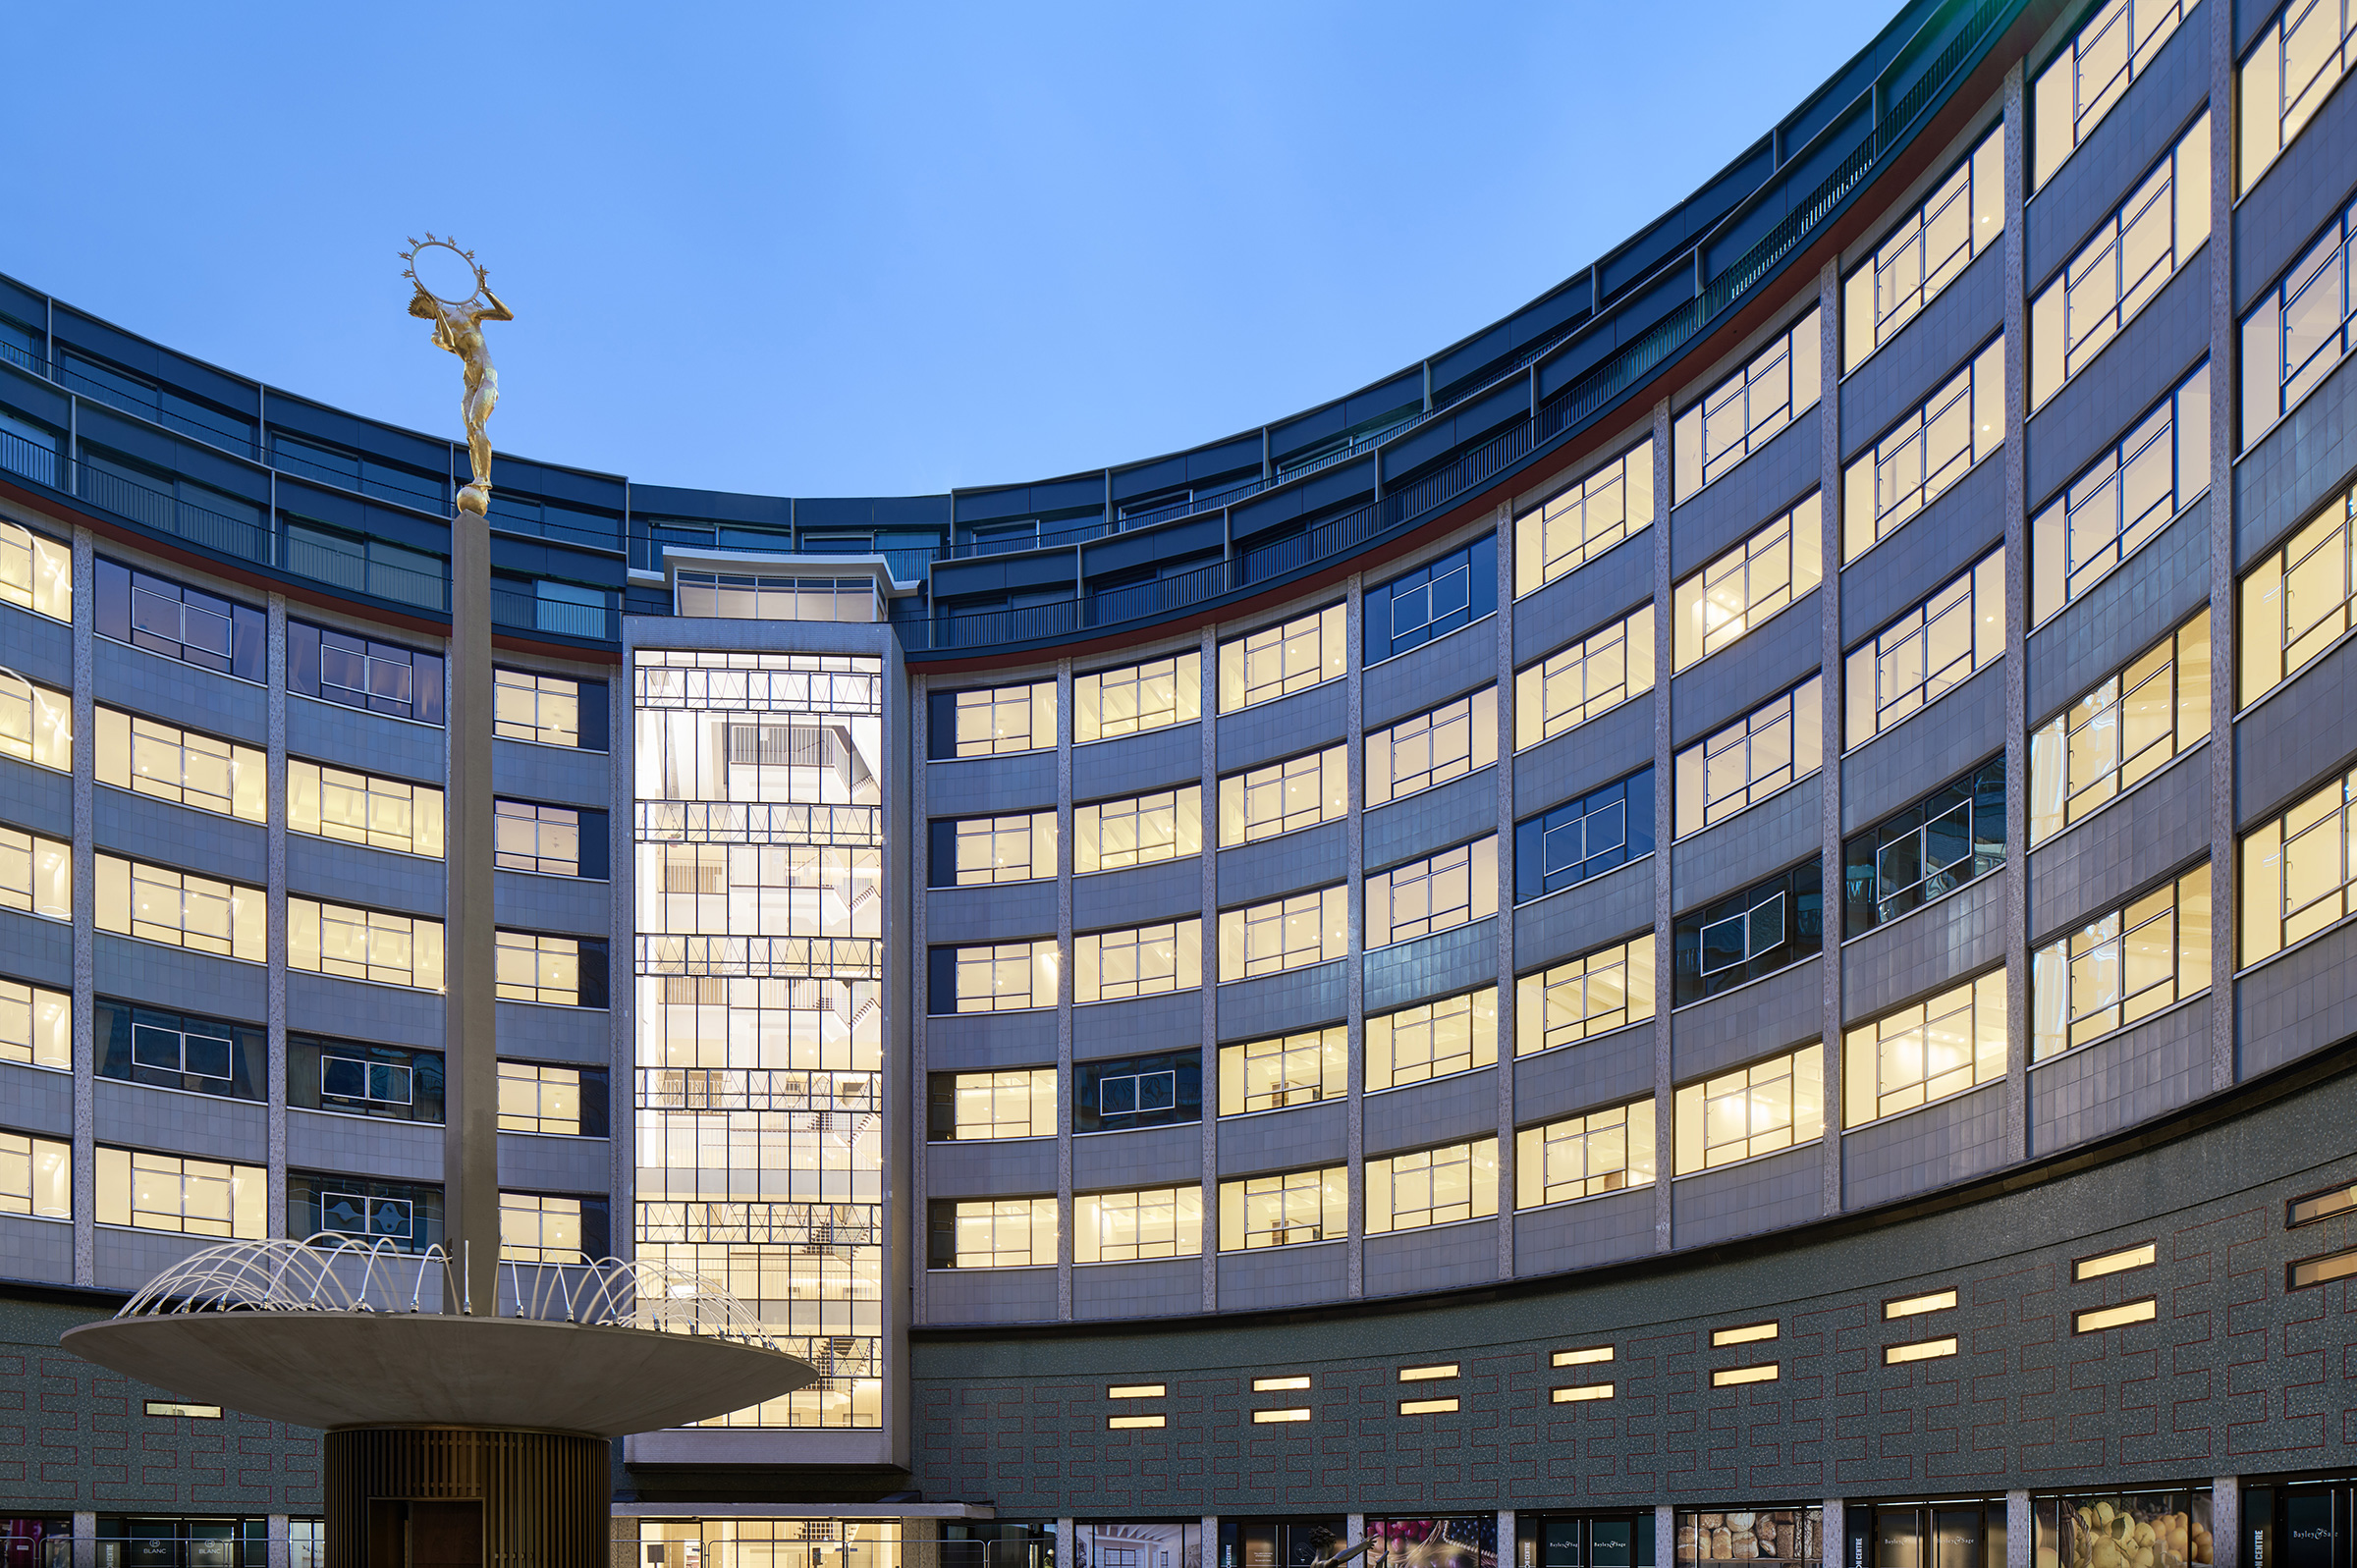 Helios Fountain, Television Centre by The Fountain Workshop